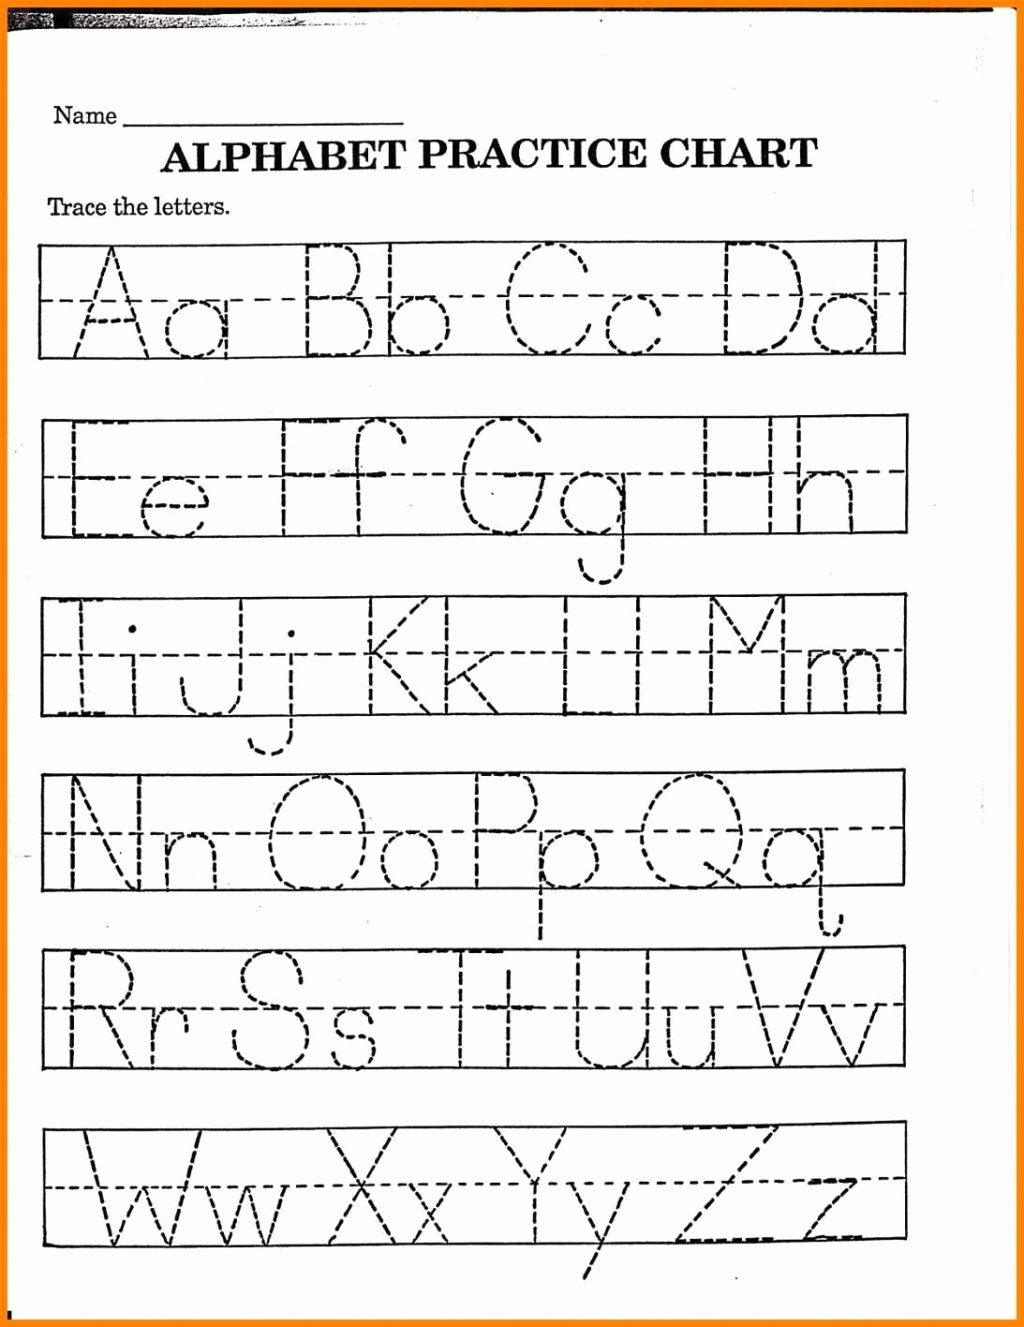 Free Printable Worksheets for Preschoolers Letters Inspirational Worksheet Practice Writing Letters Printable Worksheets